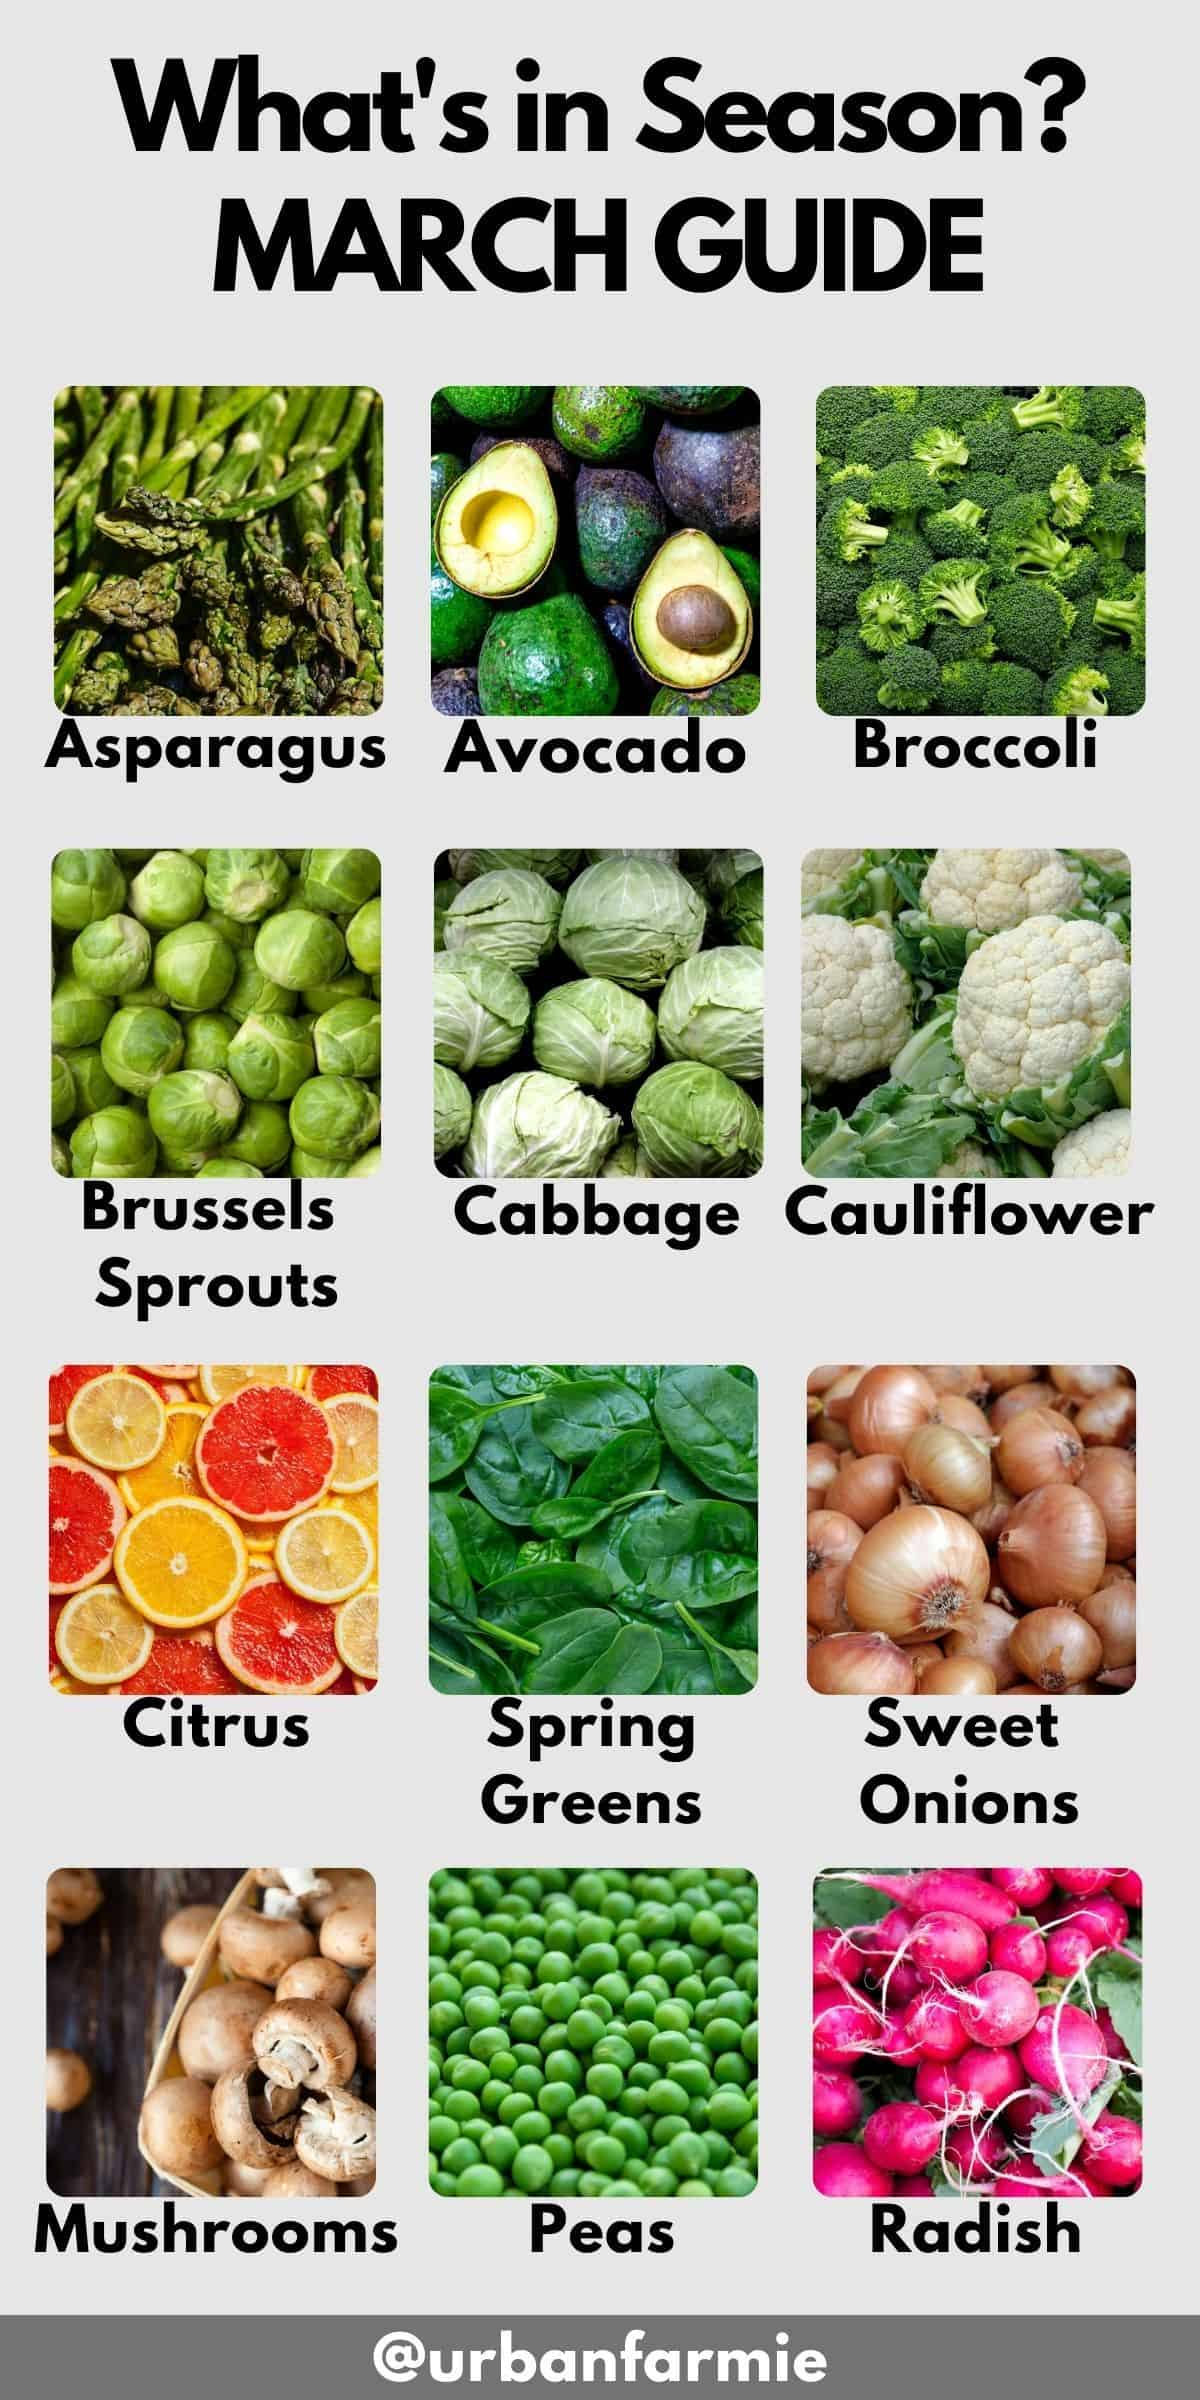 Labeled image of 12 ingredients in season in March - check post for details!